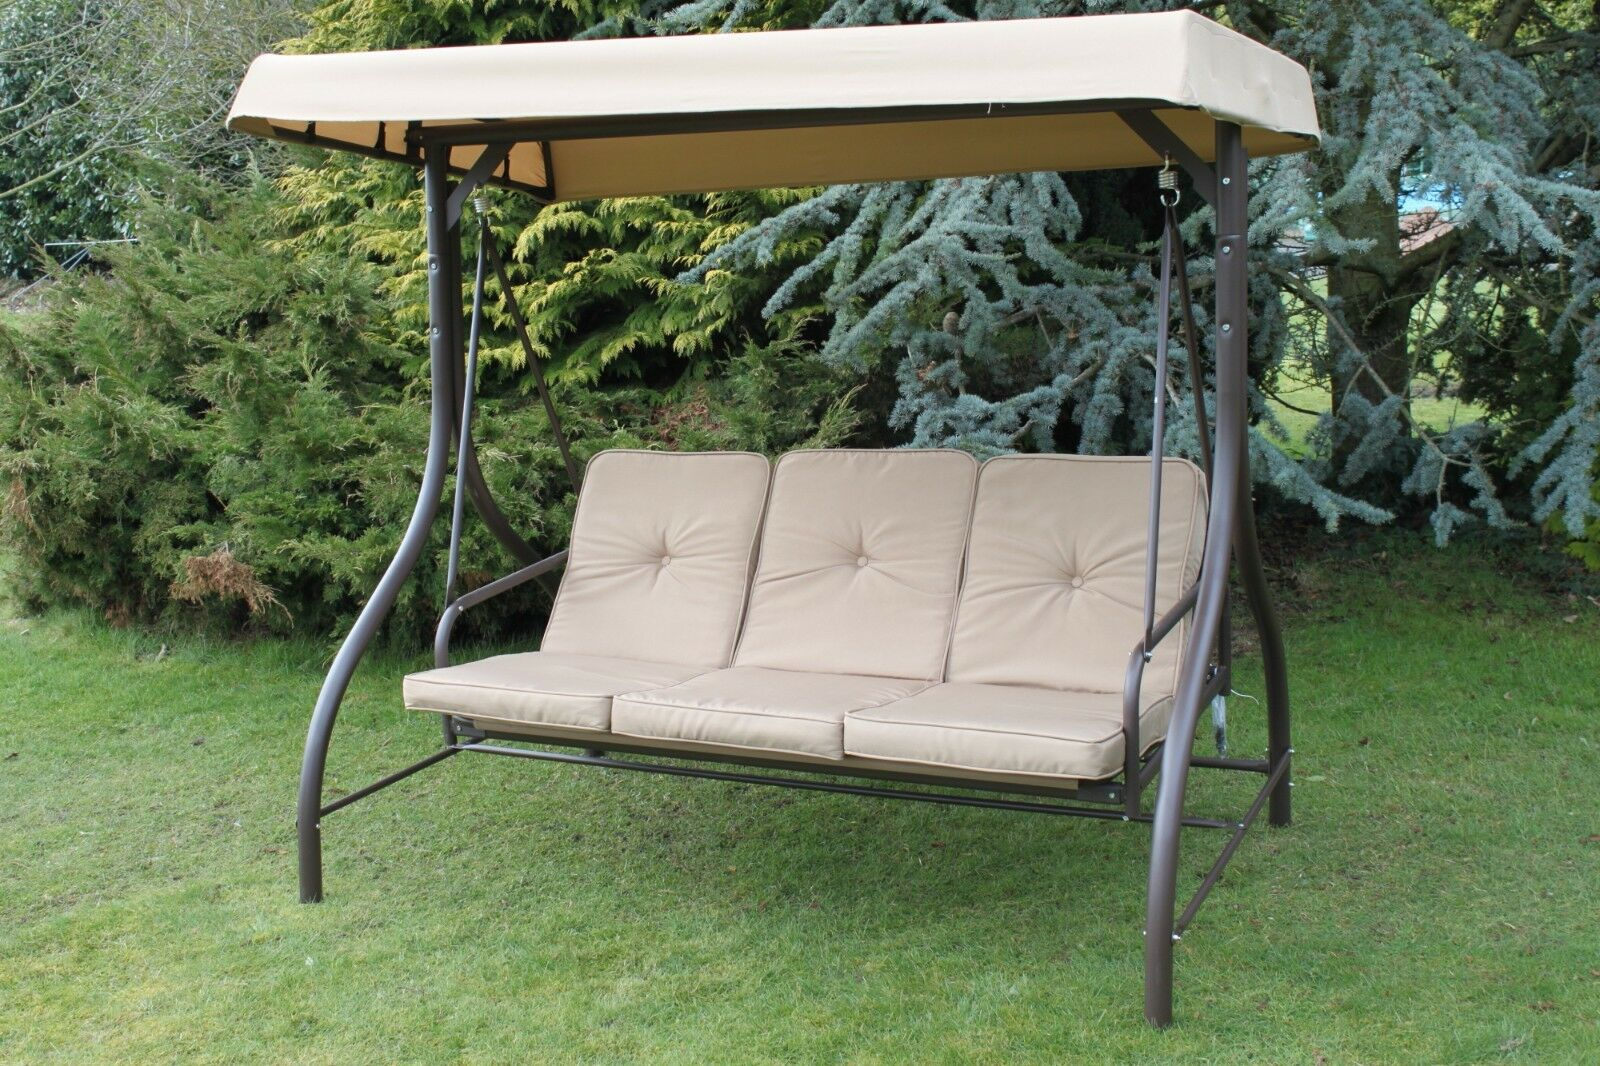 Picture of: Alfresia Reclining Garden Swing Seat For 3 With Luxury Cushions Blue Check For Sale Ebay